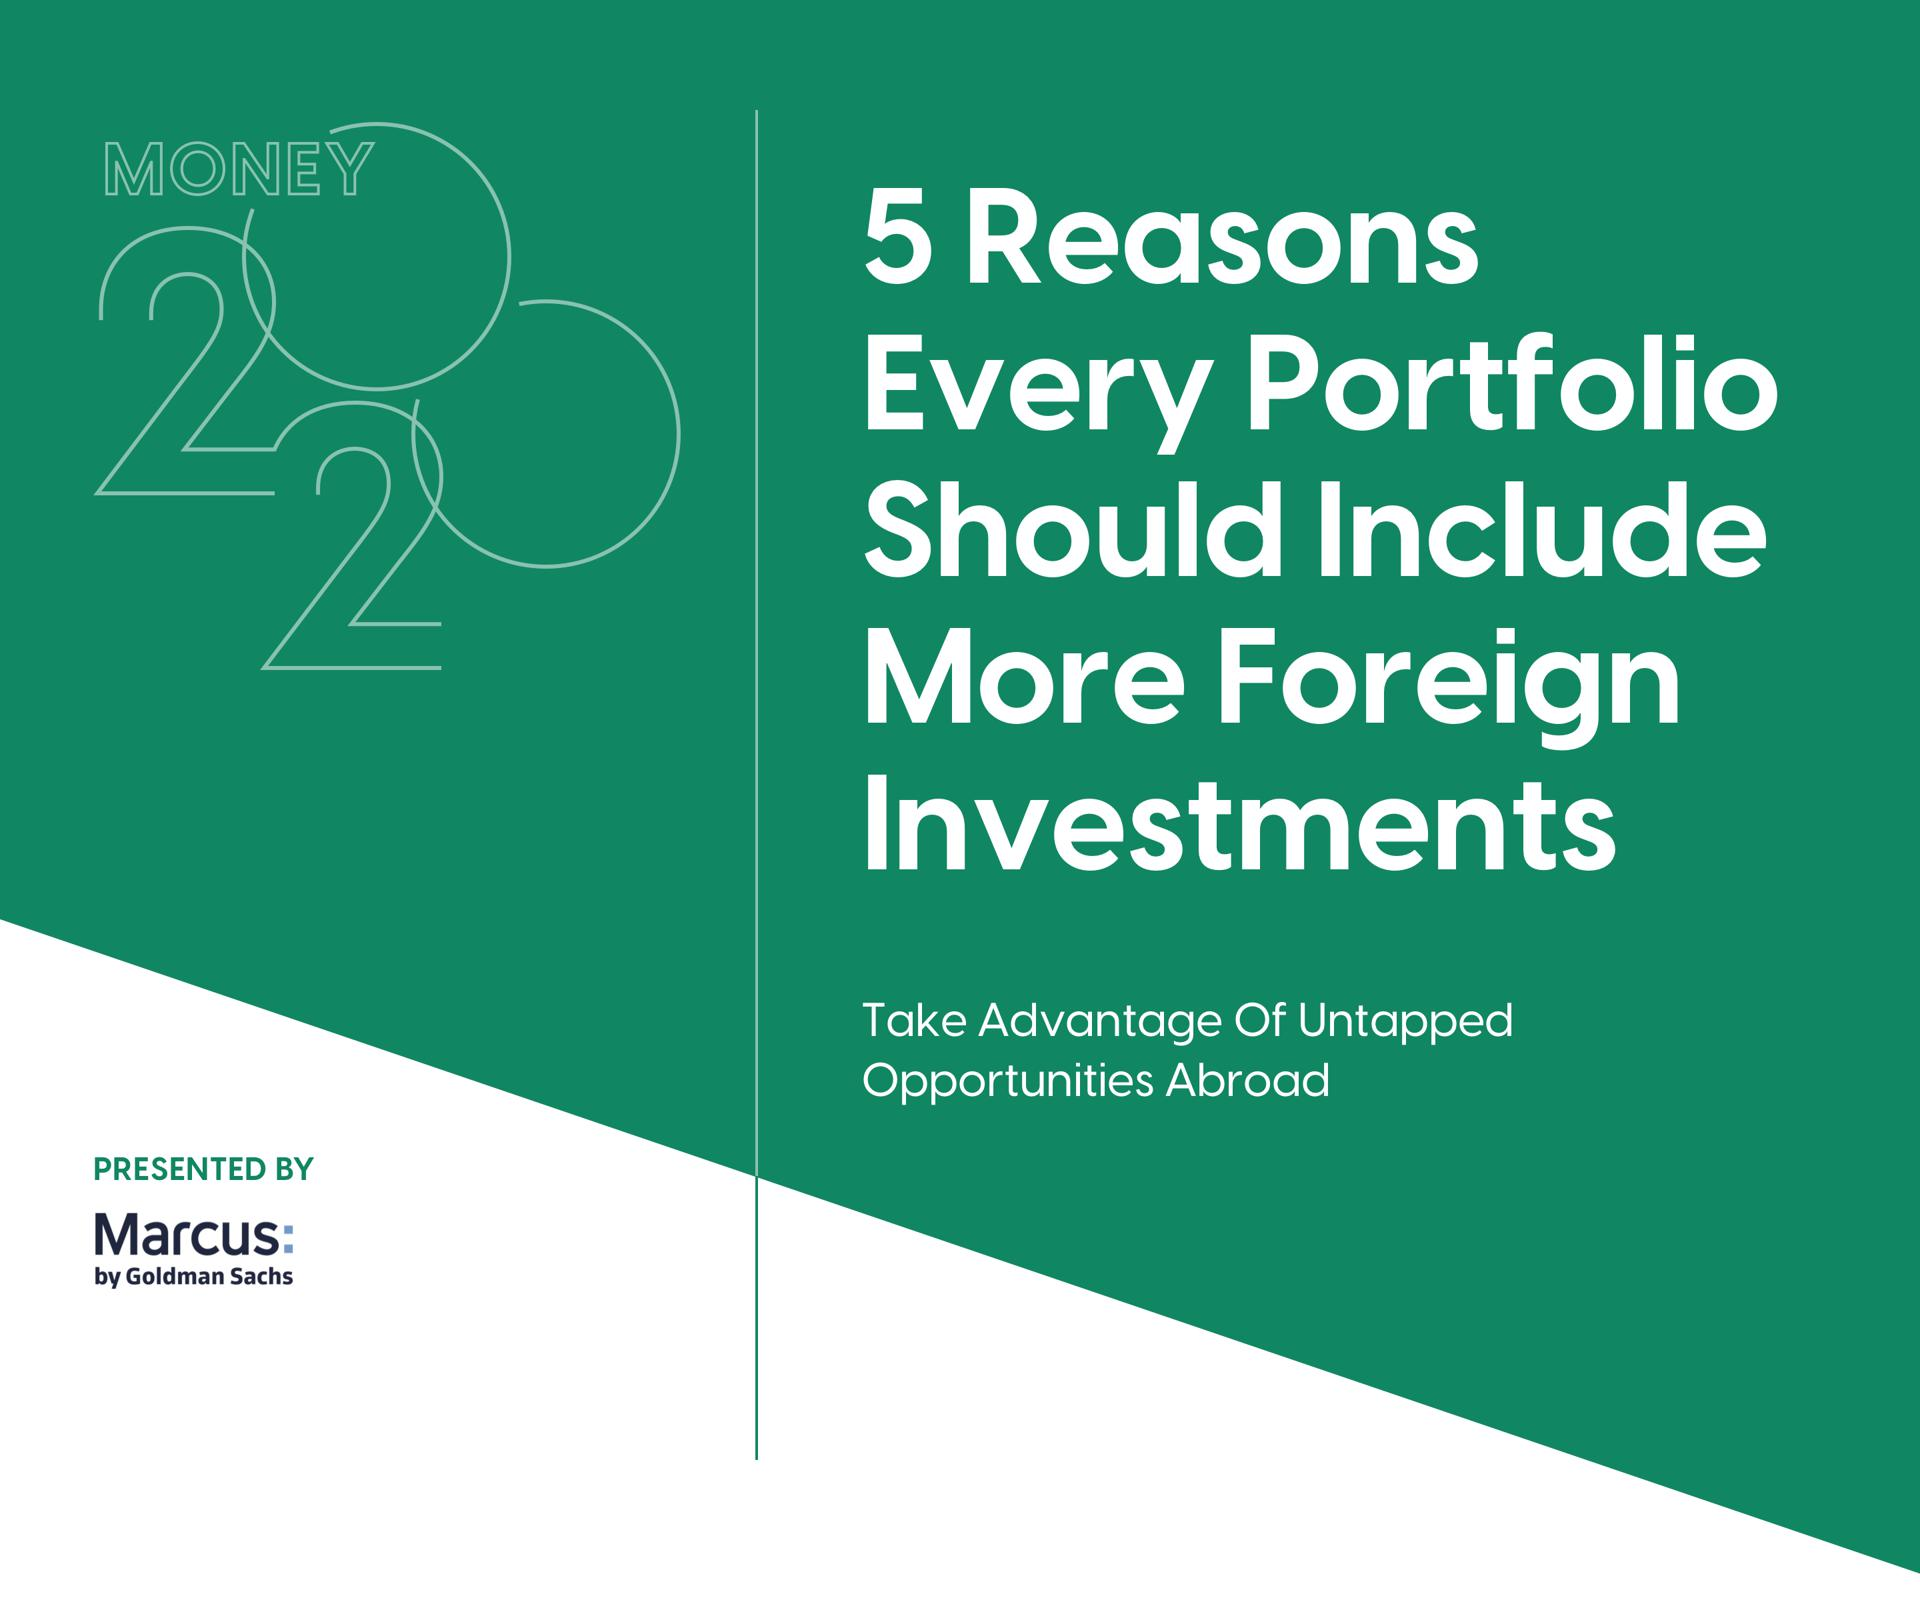 Money 2020: 5 Reasons Every Portfolio Should Include More Foreign Investments